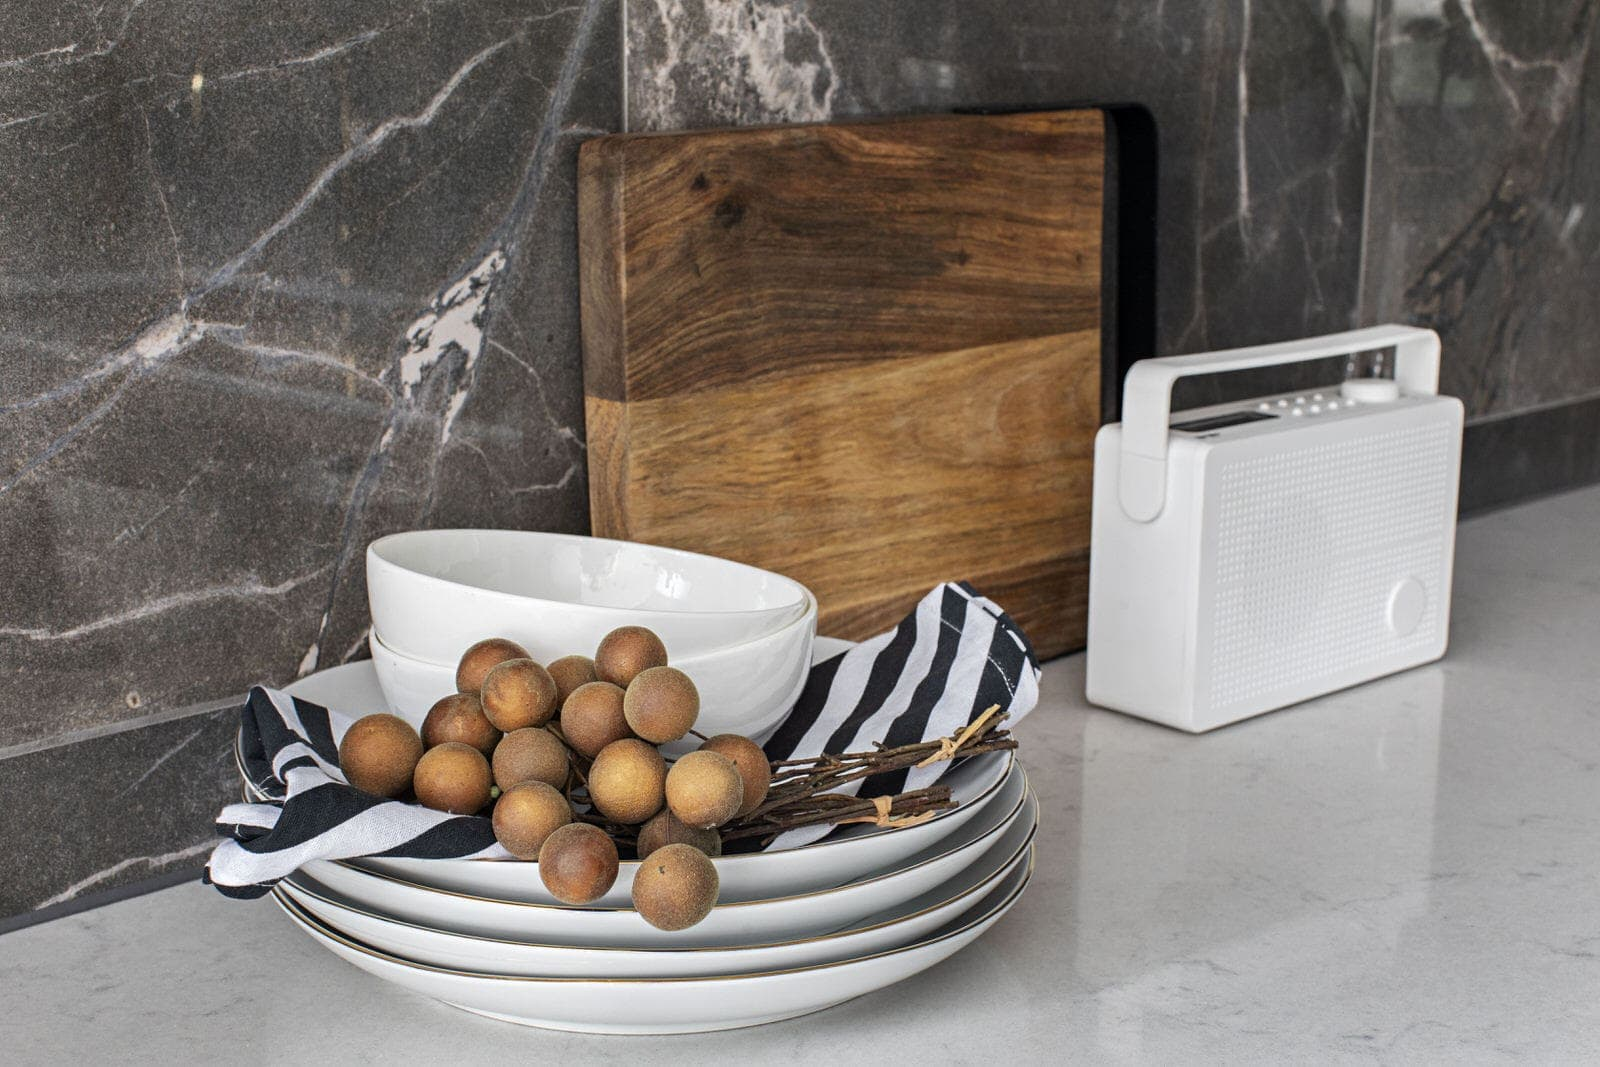 rustic kitchen styling on white benchtop